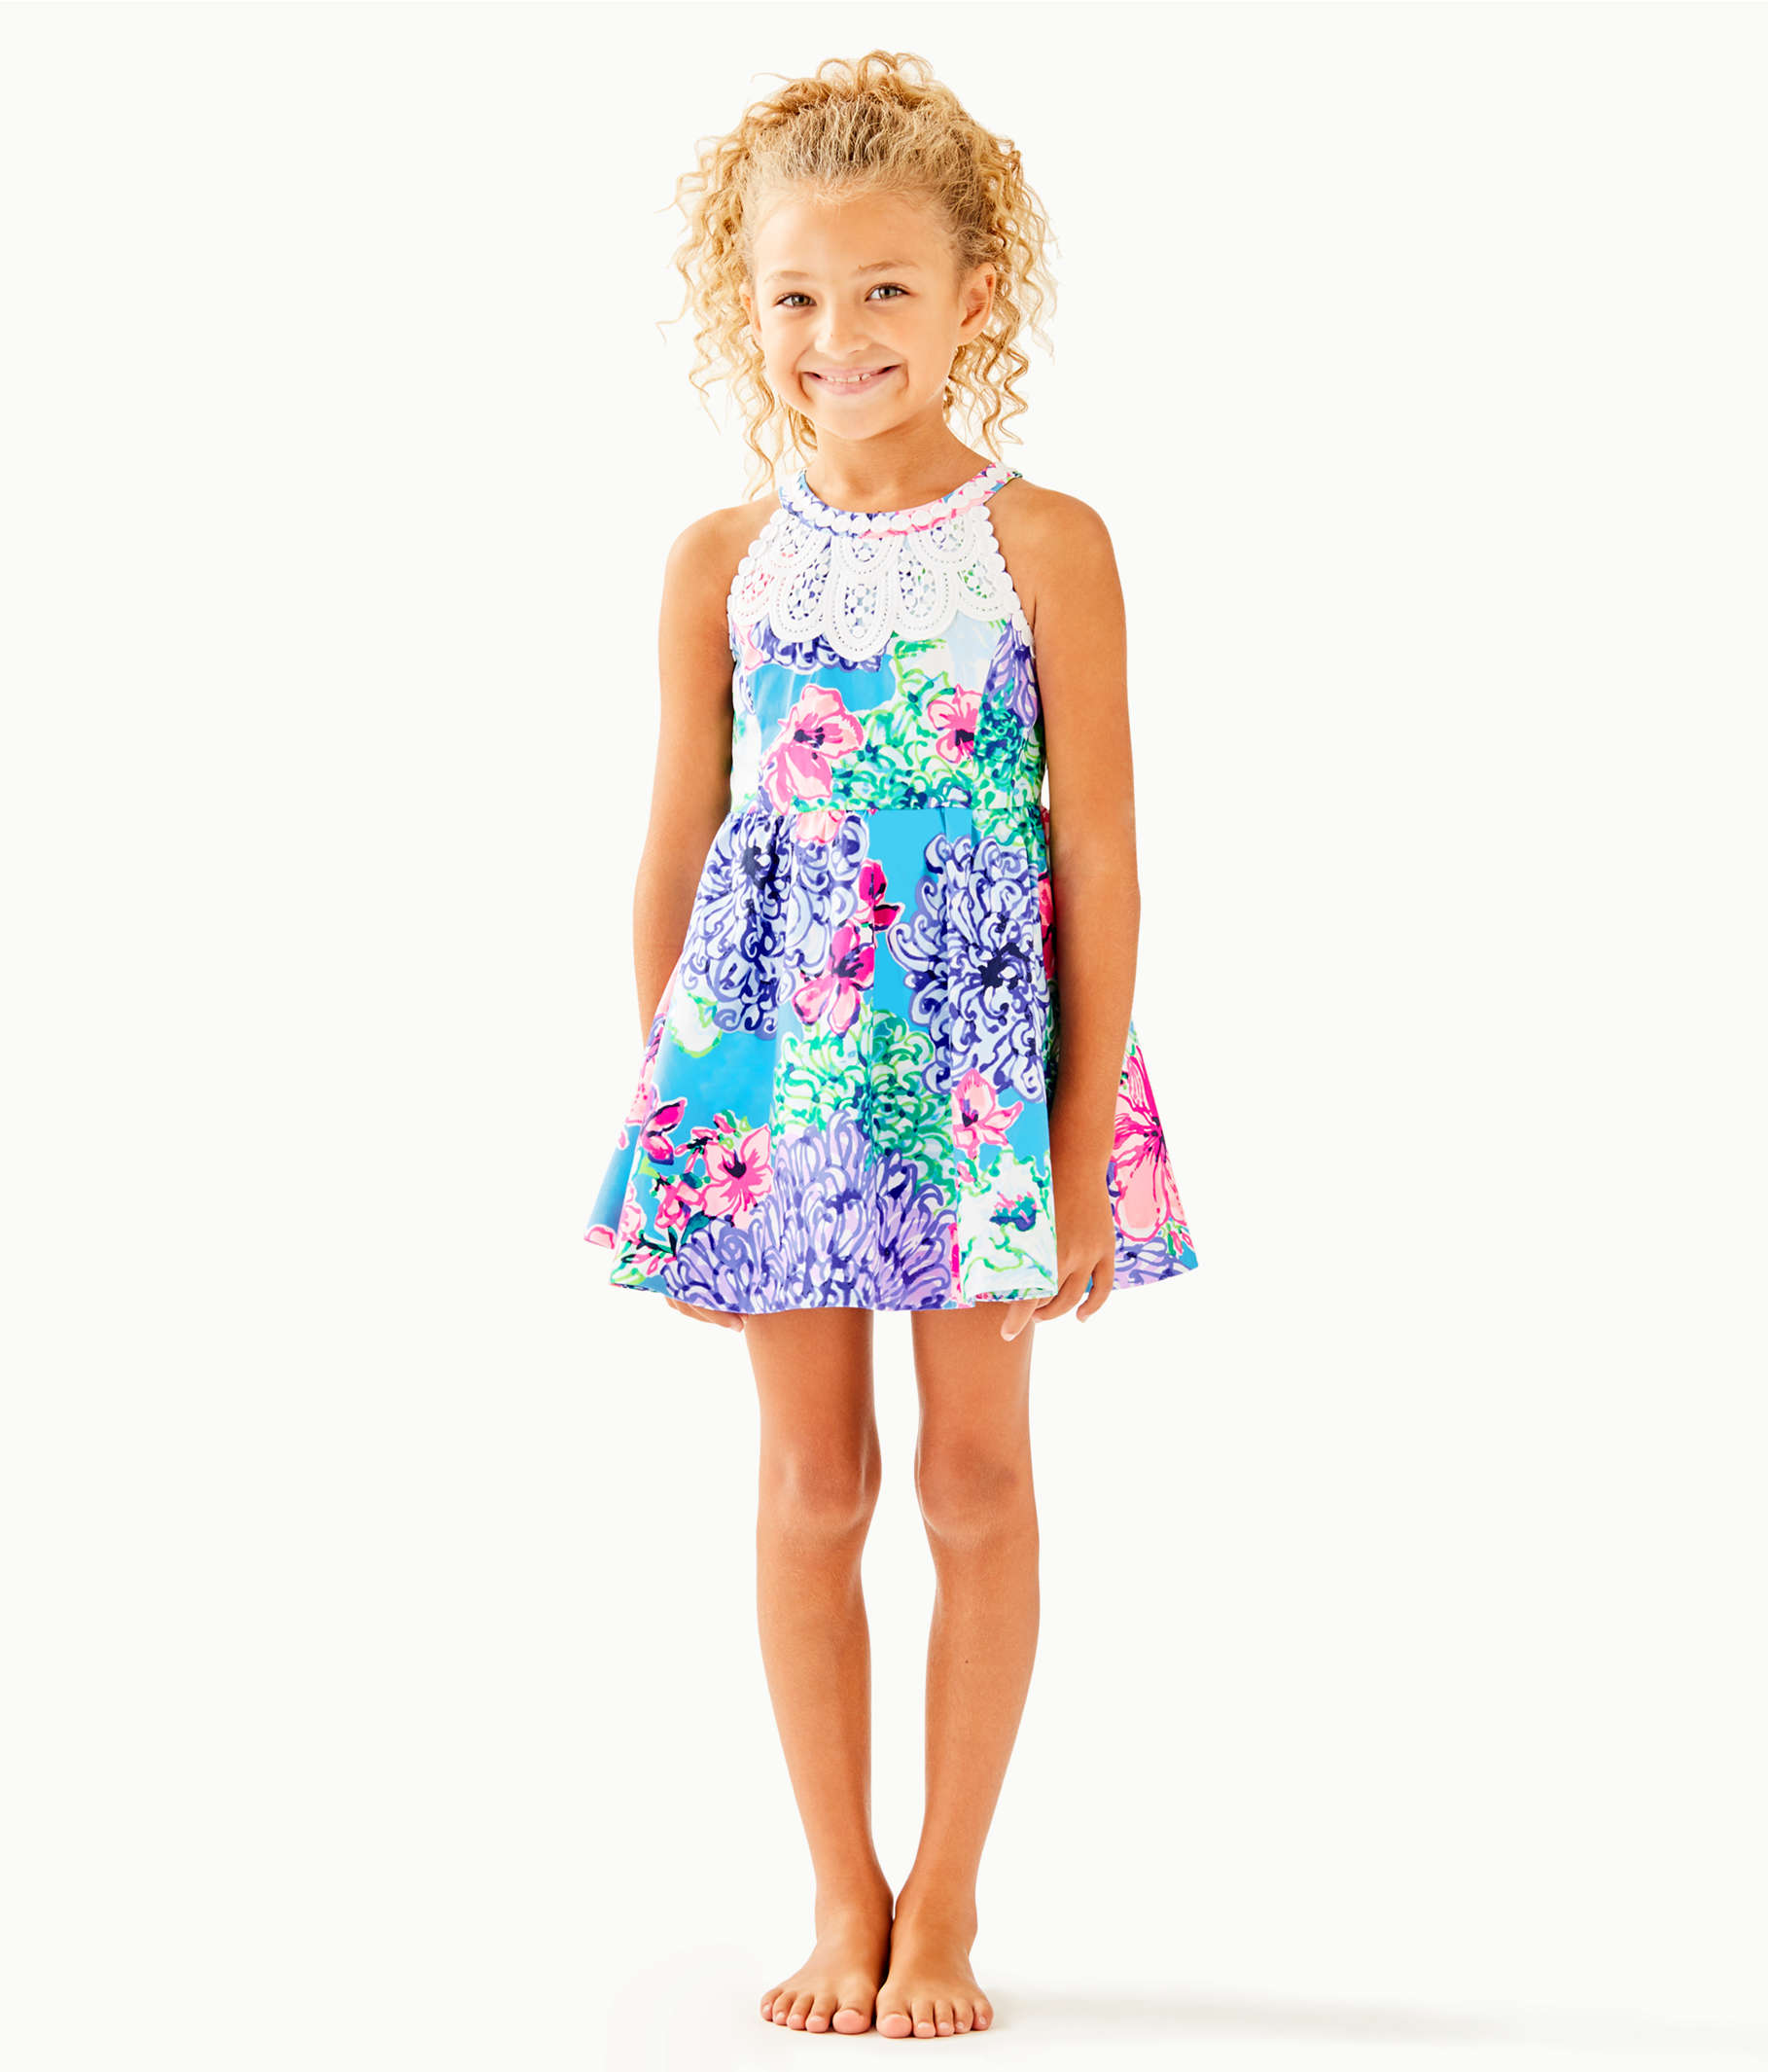 25f549939a5843 Girls Little Kinley Dress, Multi Special Delivery, large ...